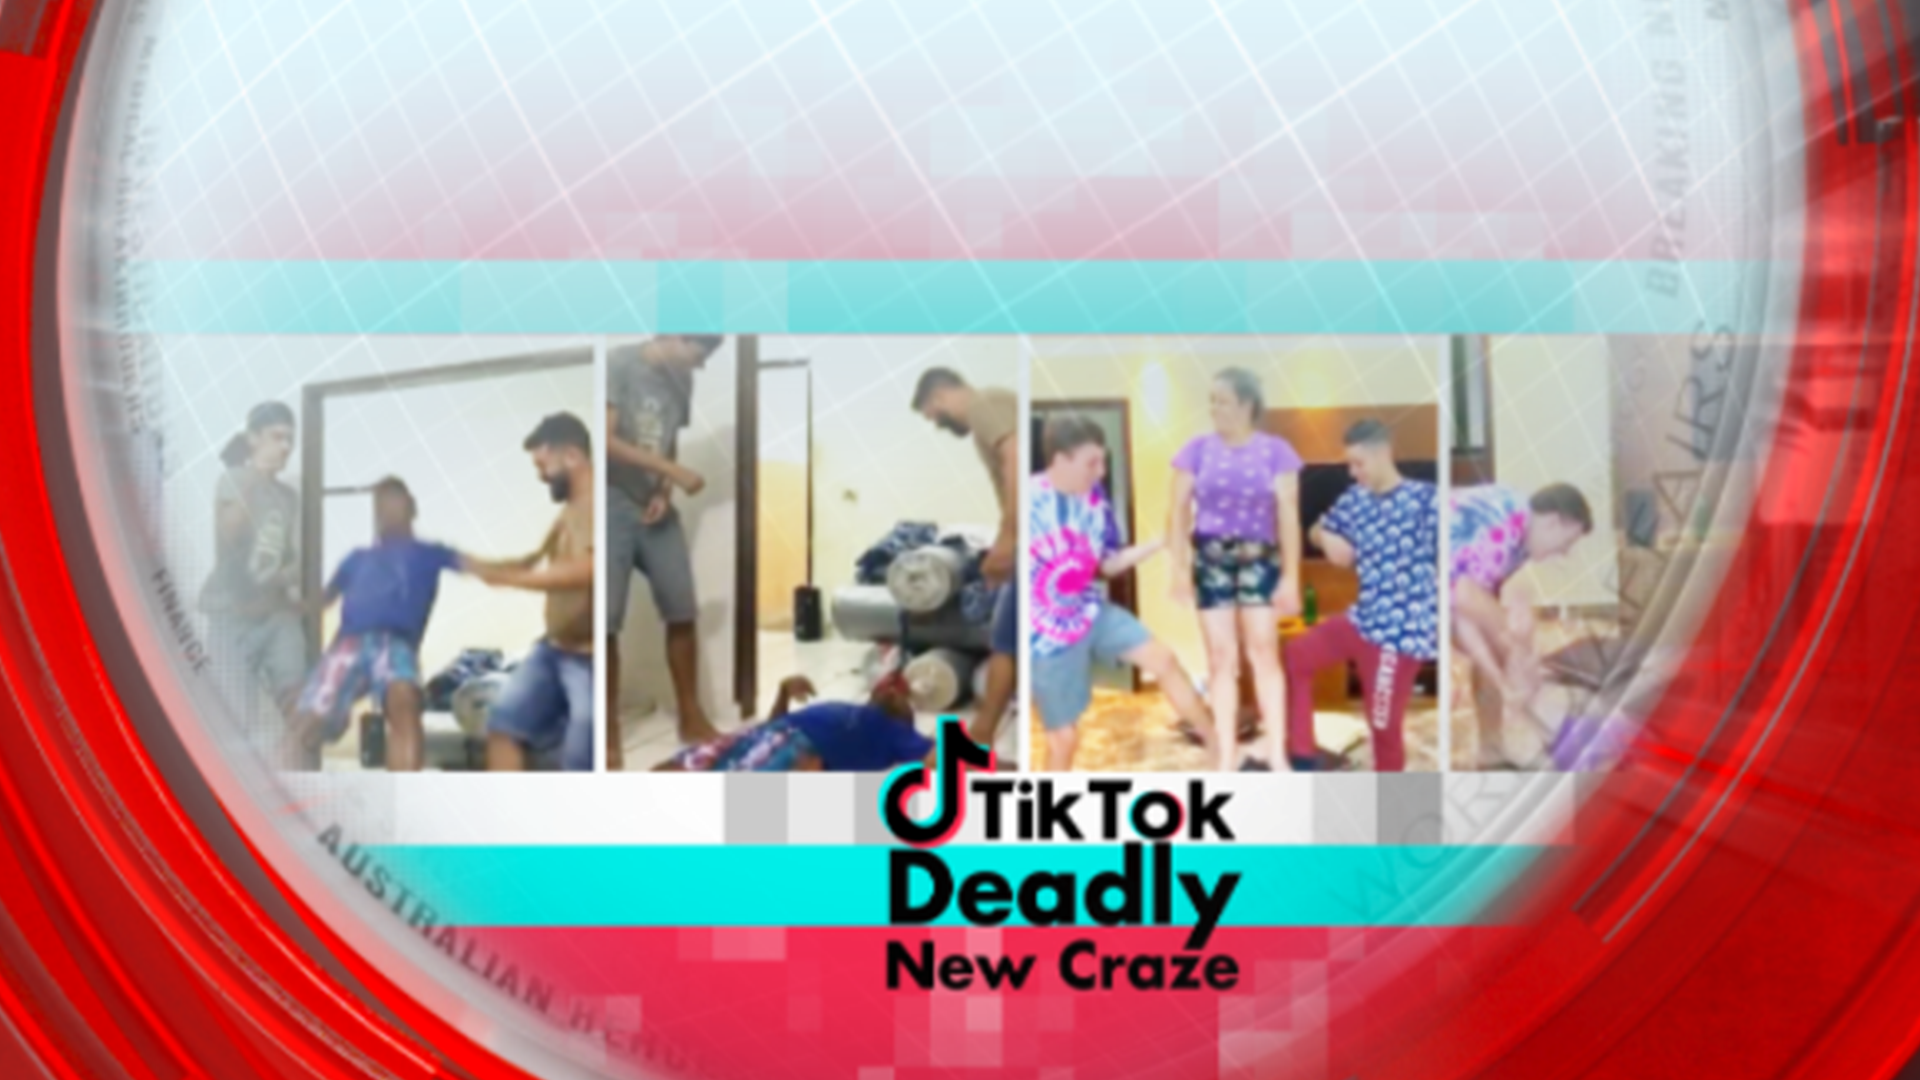 TikTok deadly new craze